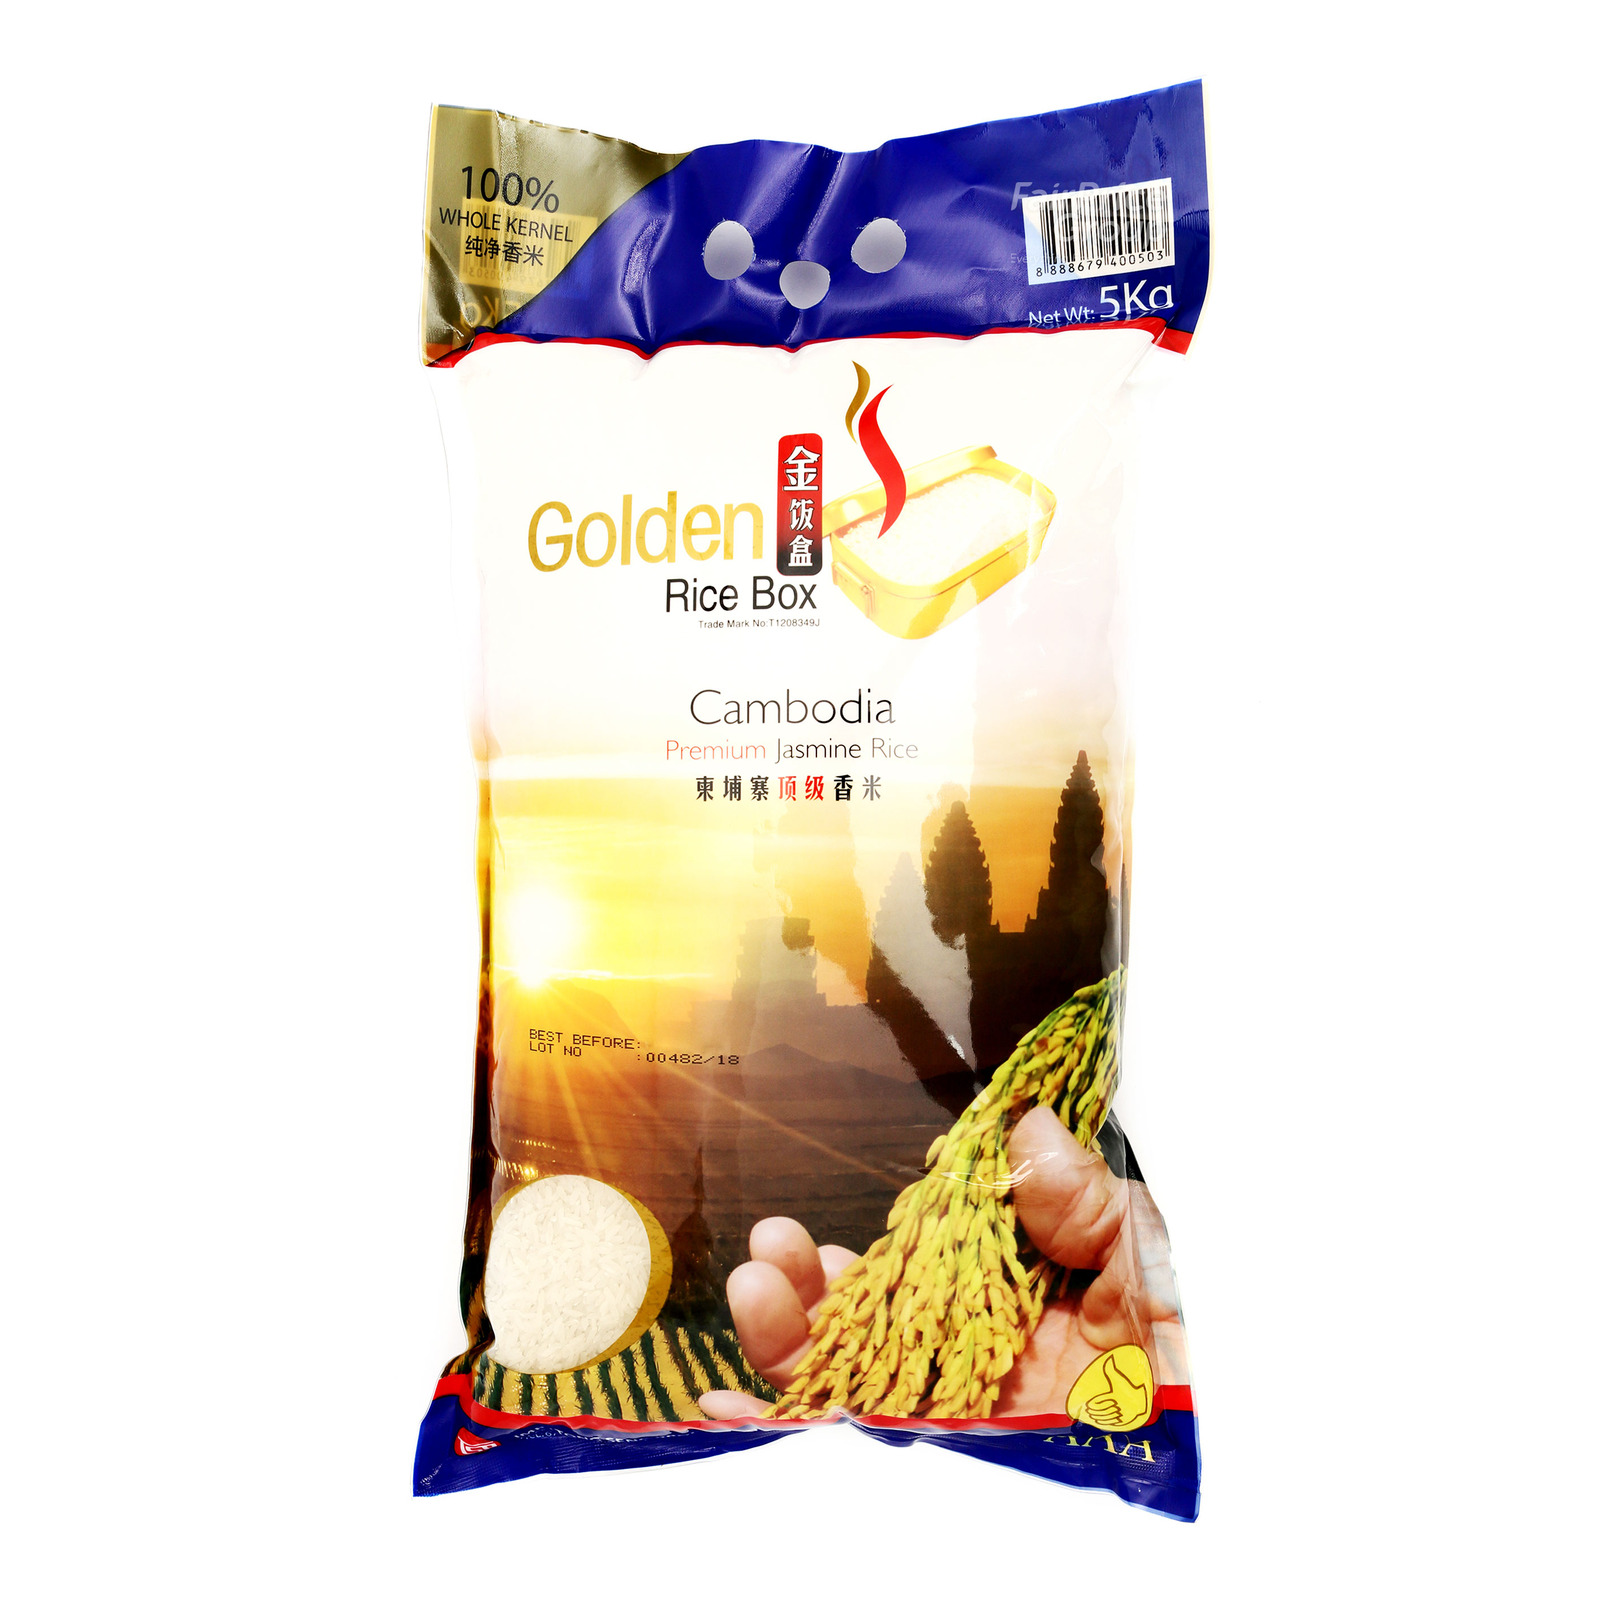 Golden Rice Box Premium Jasmine Rice